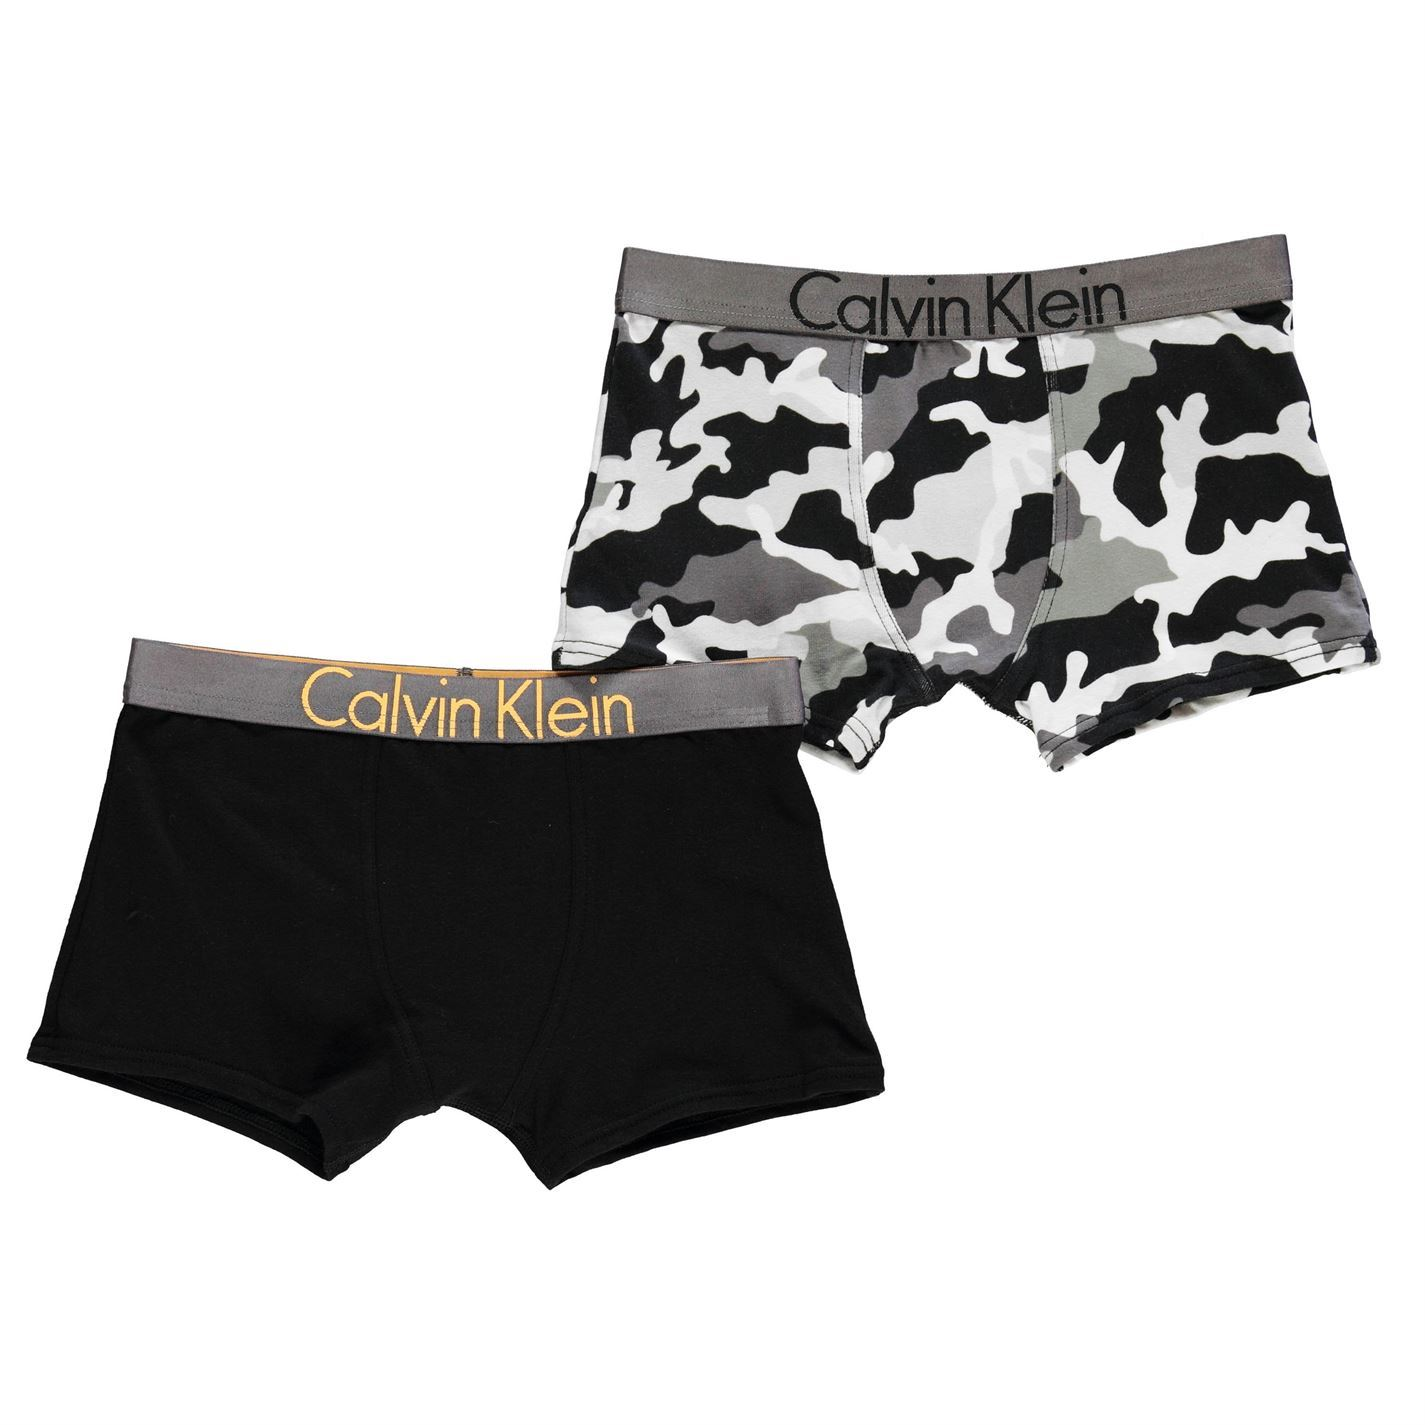 b000d7cf22 Kids Calvin Klein 2 Pack Camo Trunks Underwear Stretch New | eBay